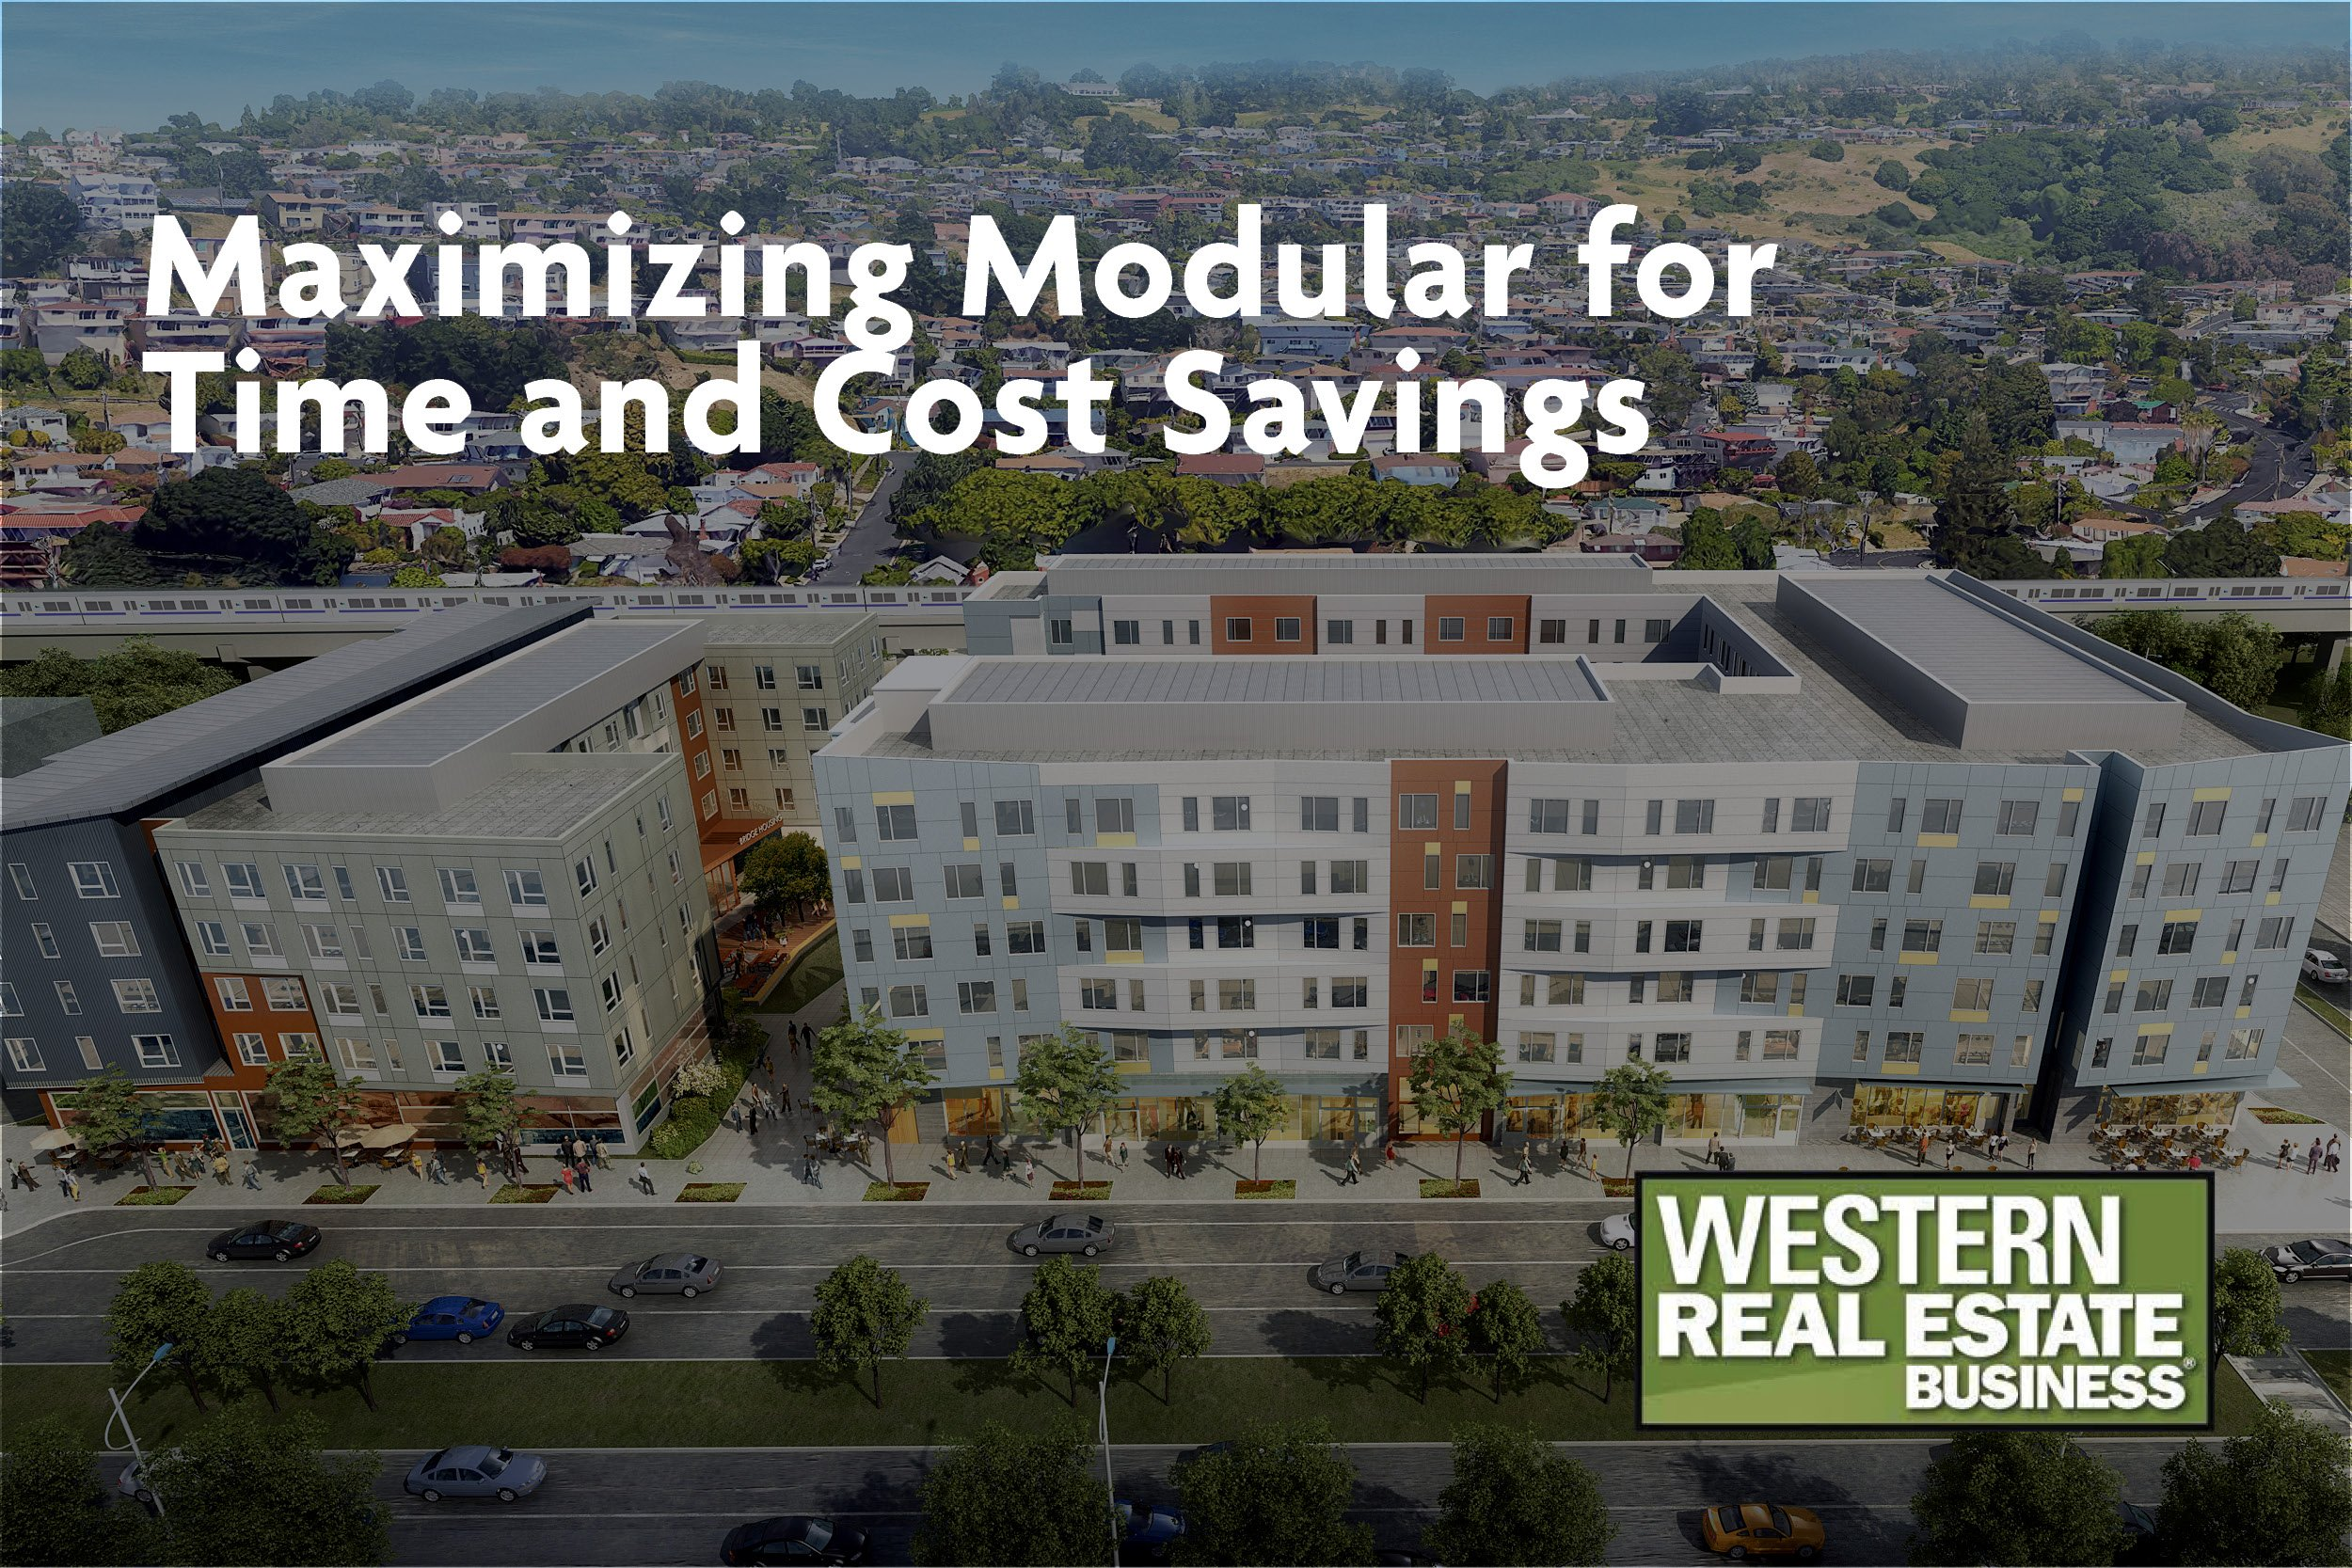 In the News: Western Real Estate Business – Maximizing Modular Fabrication